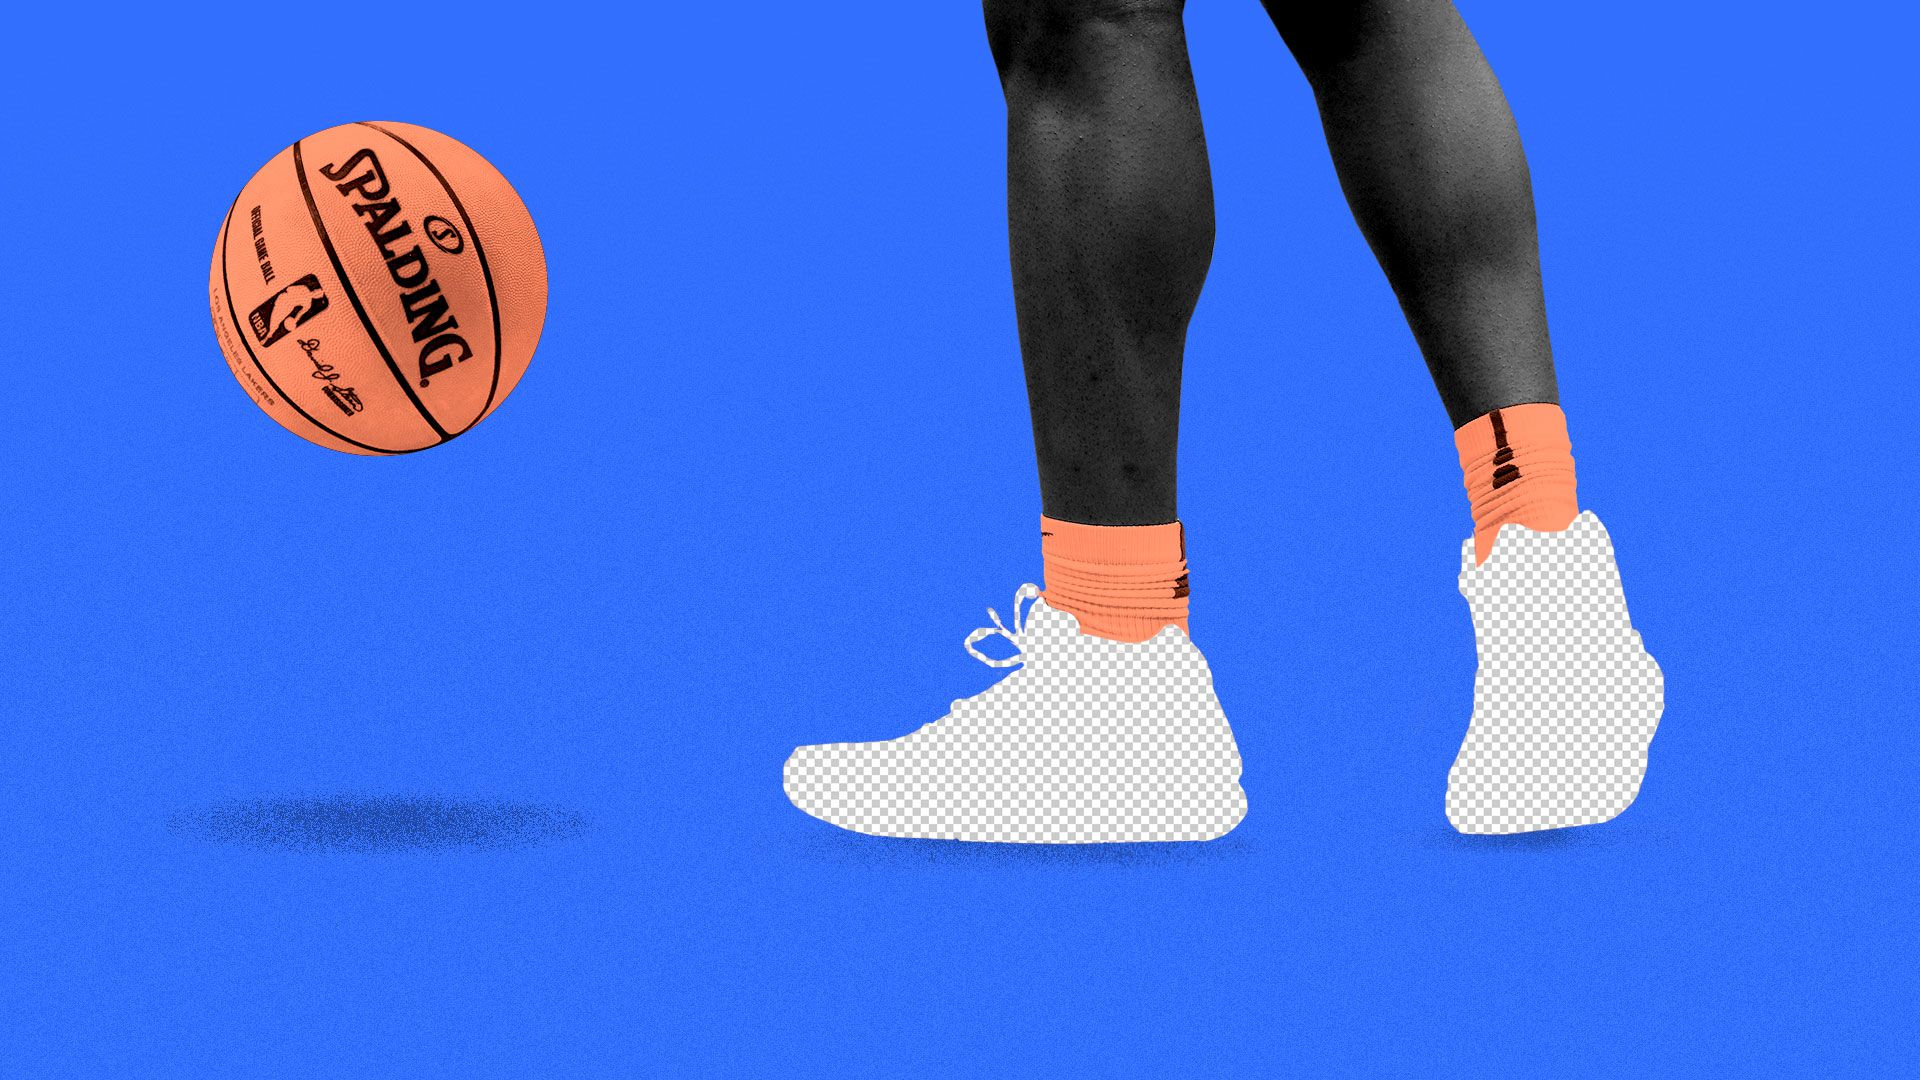 Illustration of Zion Williamson's shoes as empty backgrounds